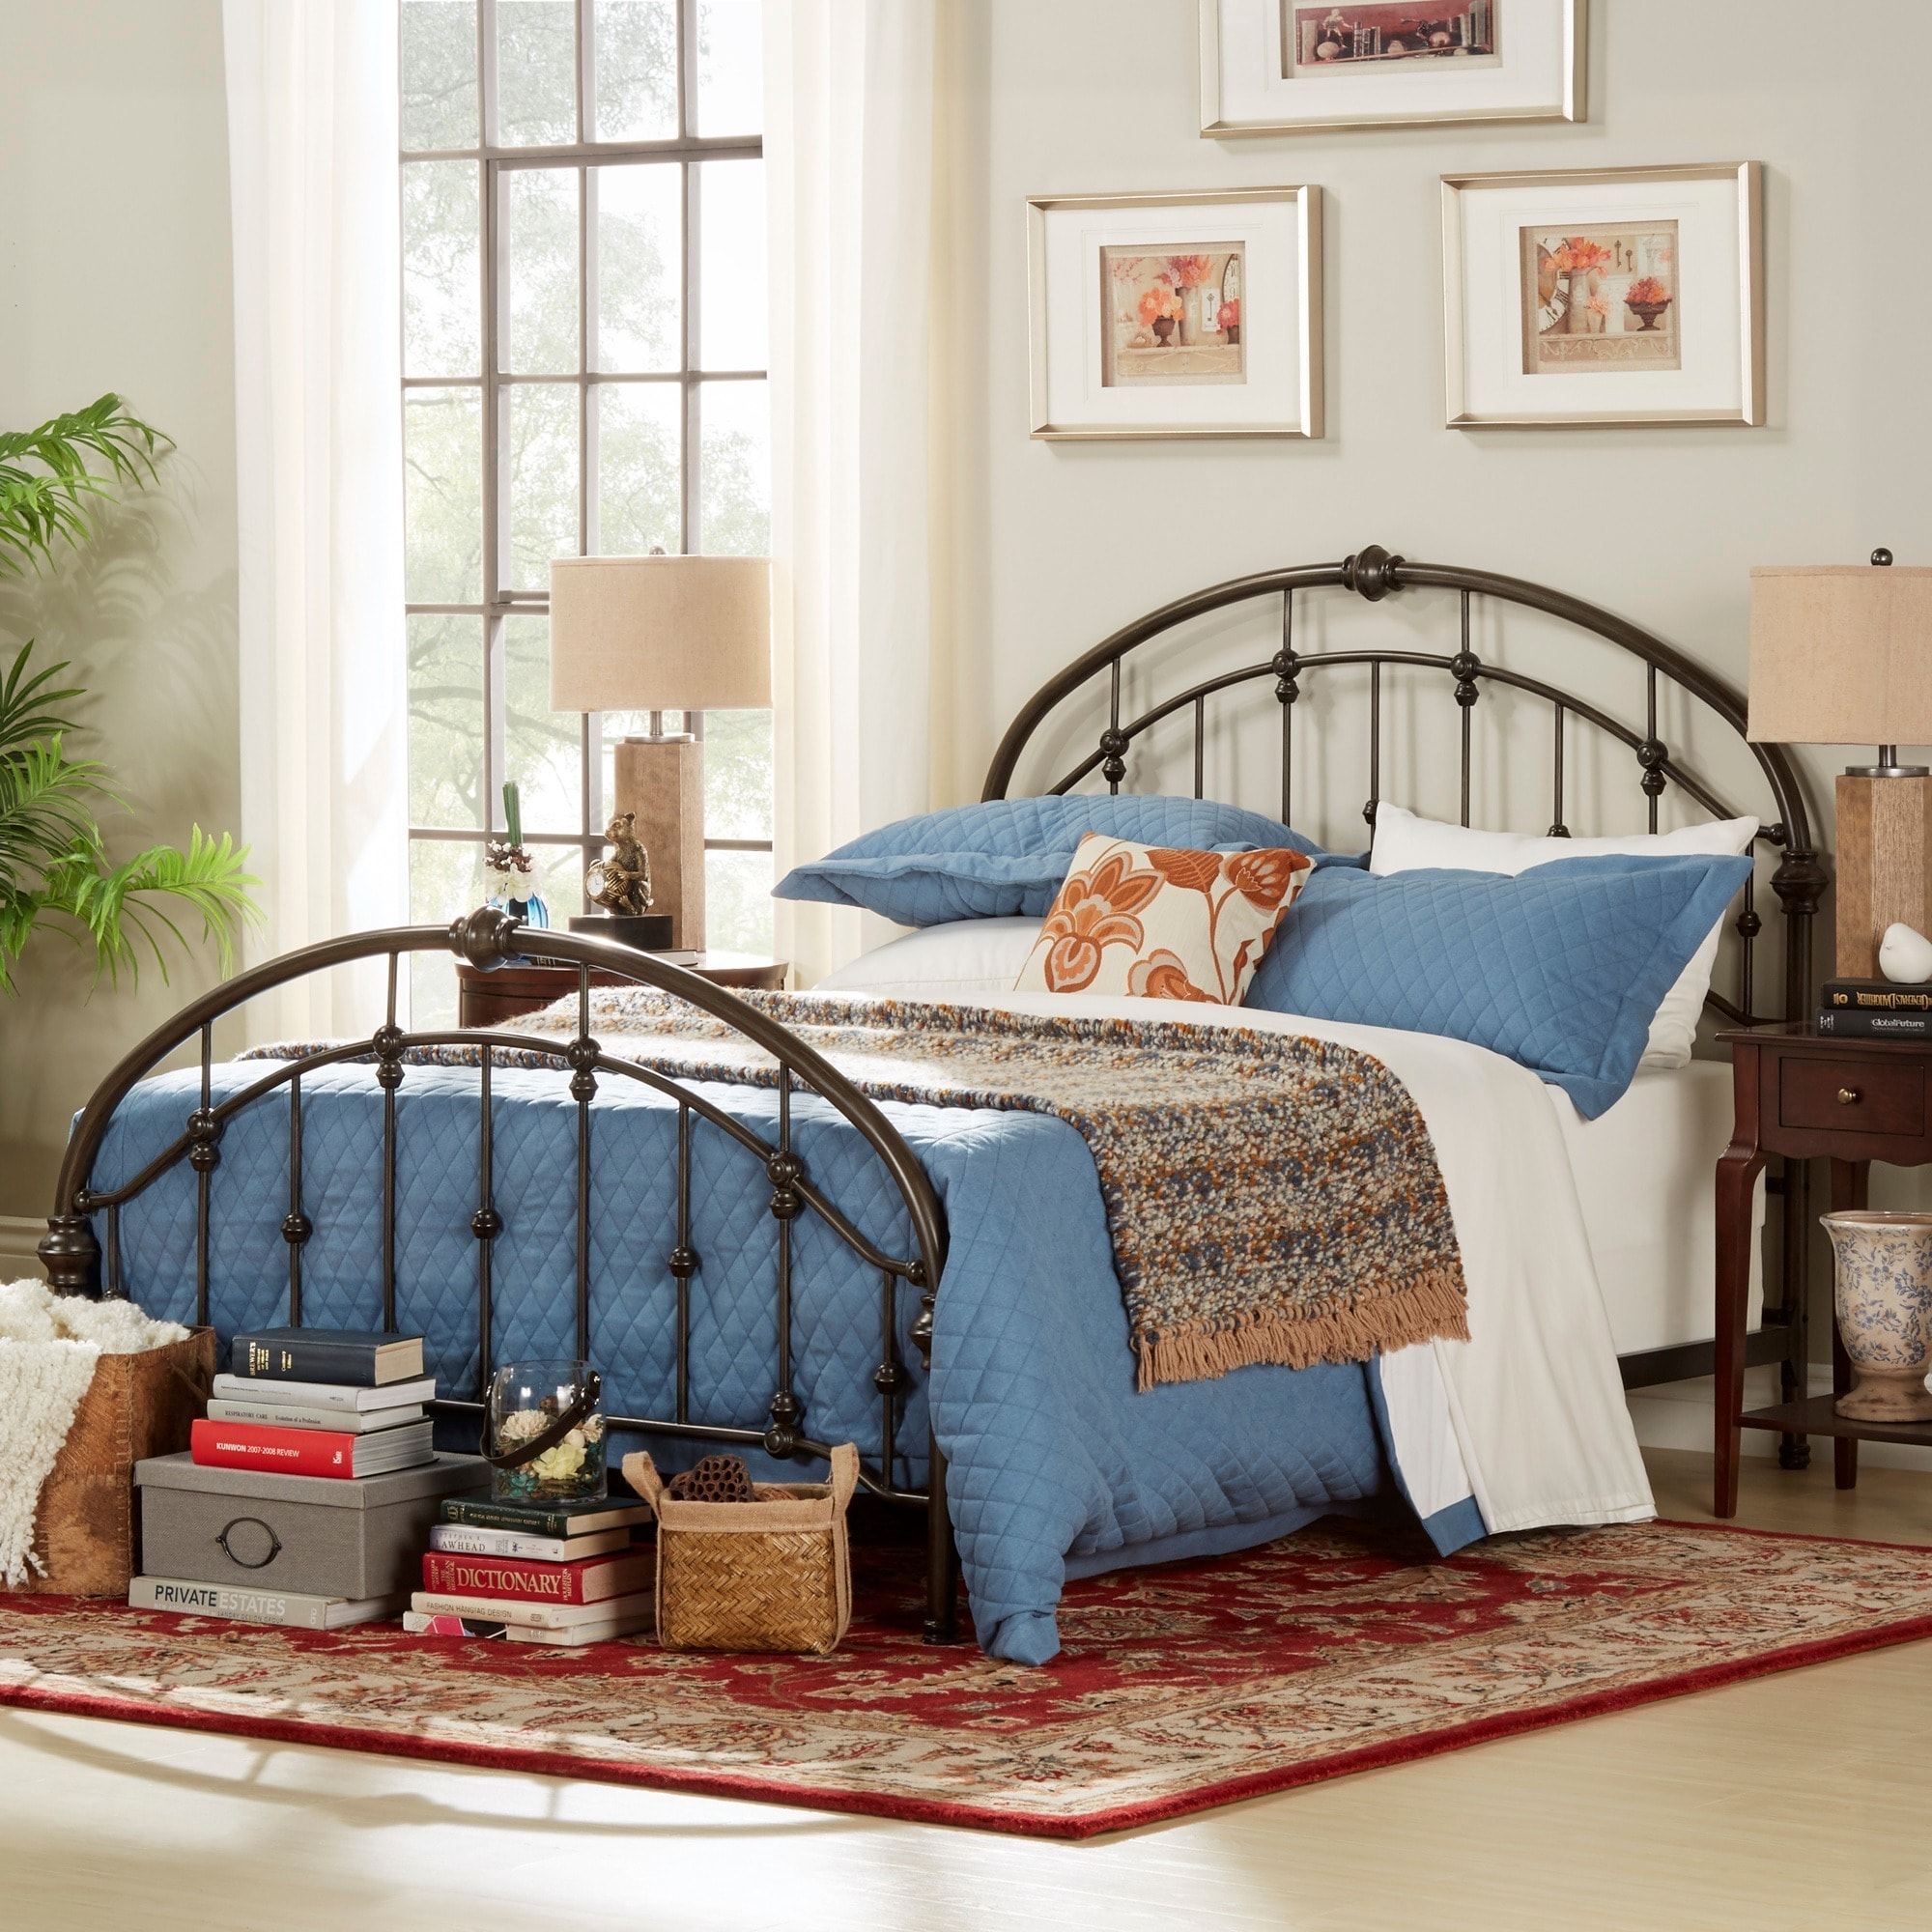 Lacey Round Curved Double Top Arches Victorian Iron Bed by iNSPIRE Q  Classic - Free Shipping